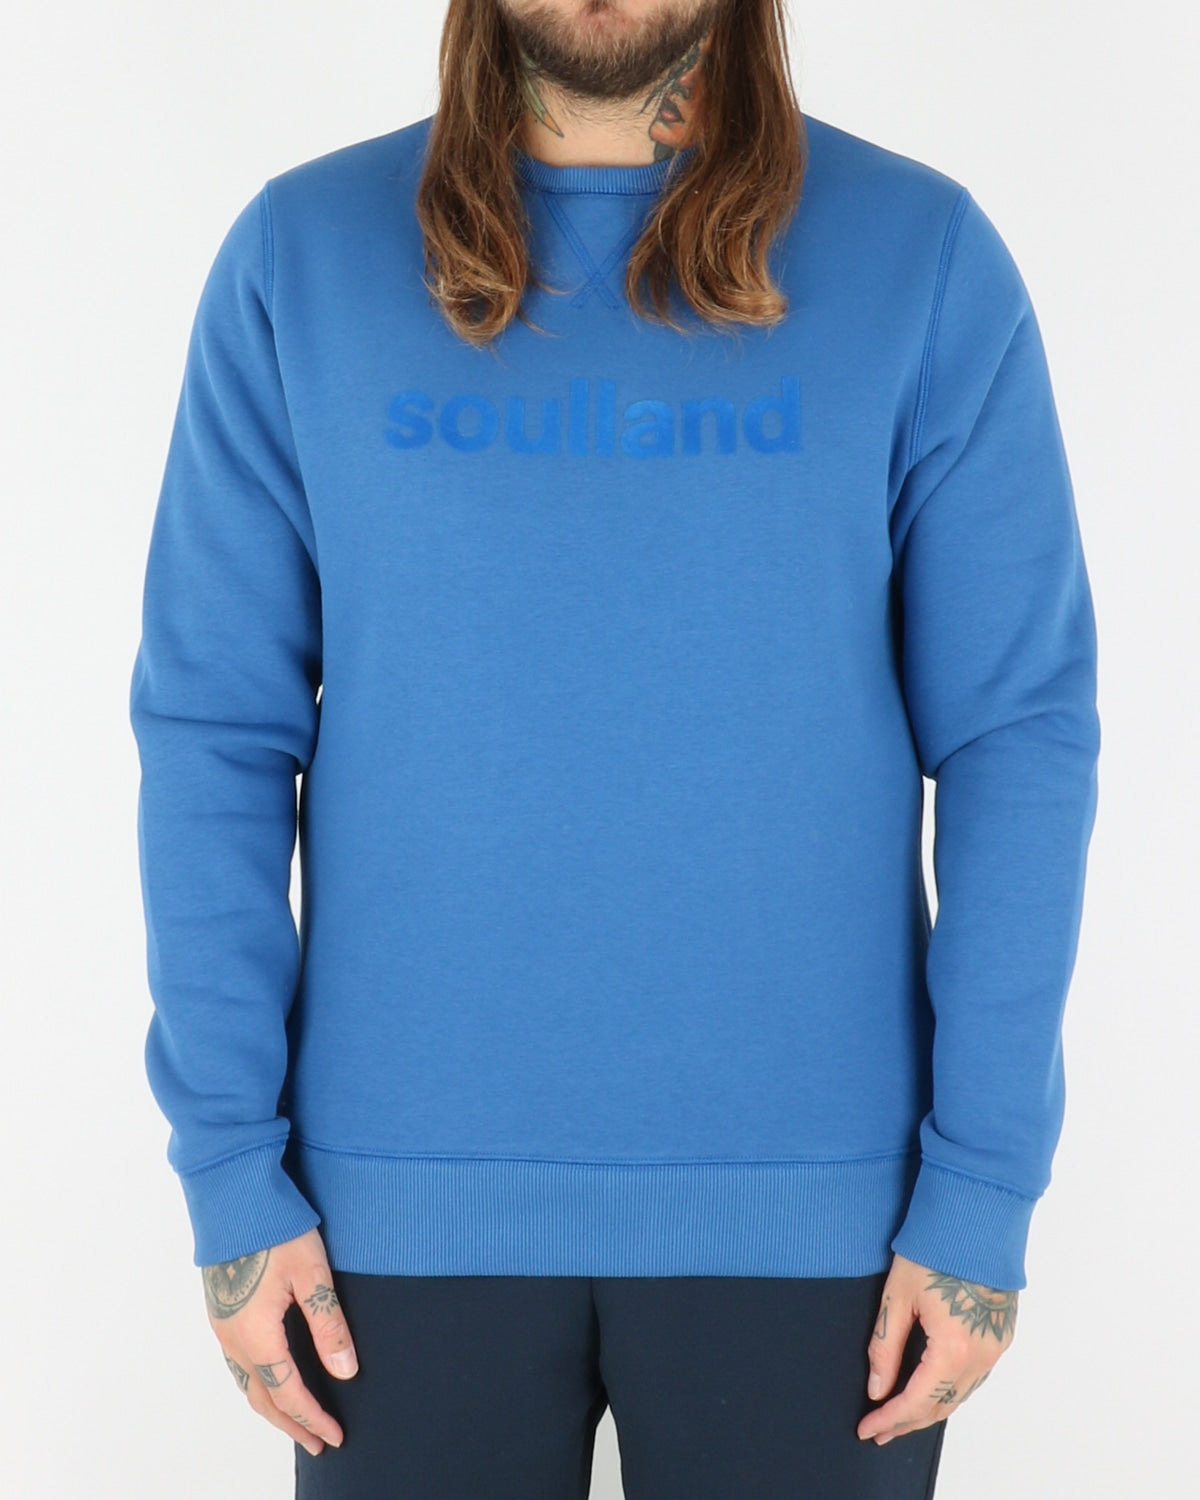 soulland_willie sweatshirt_blue_1_3